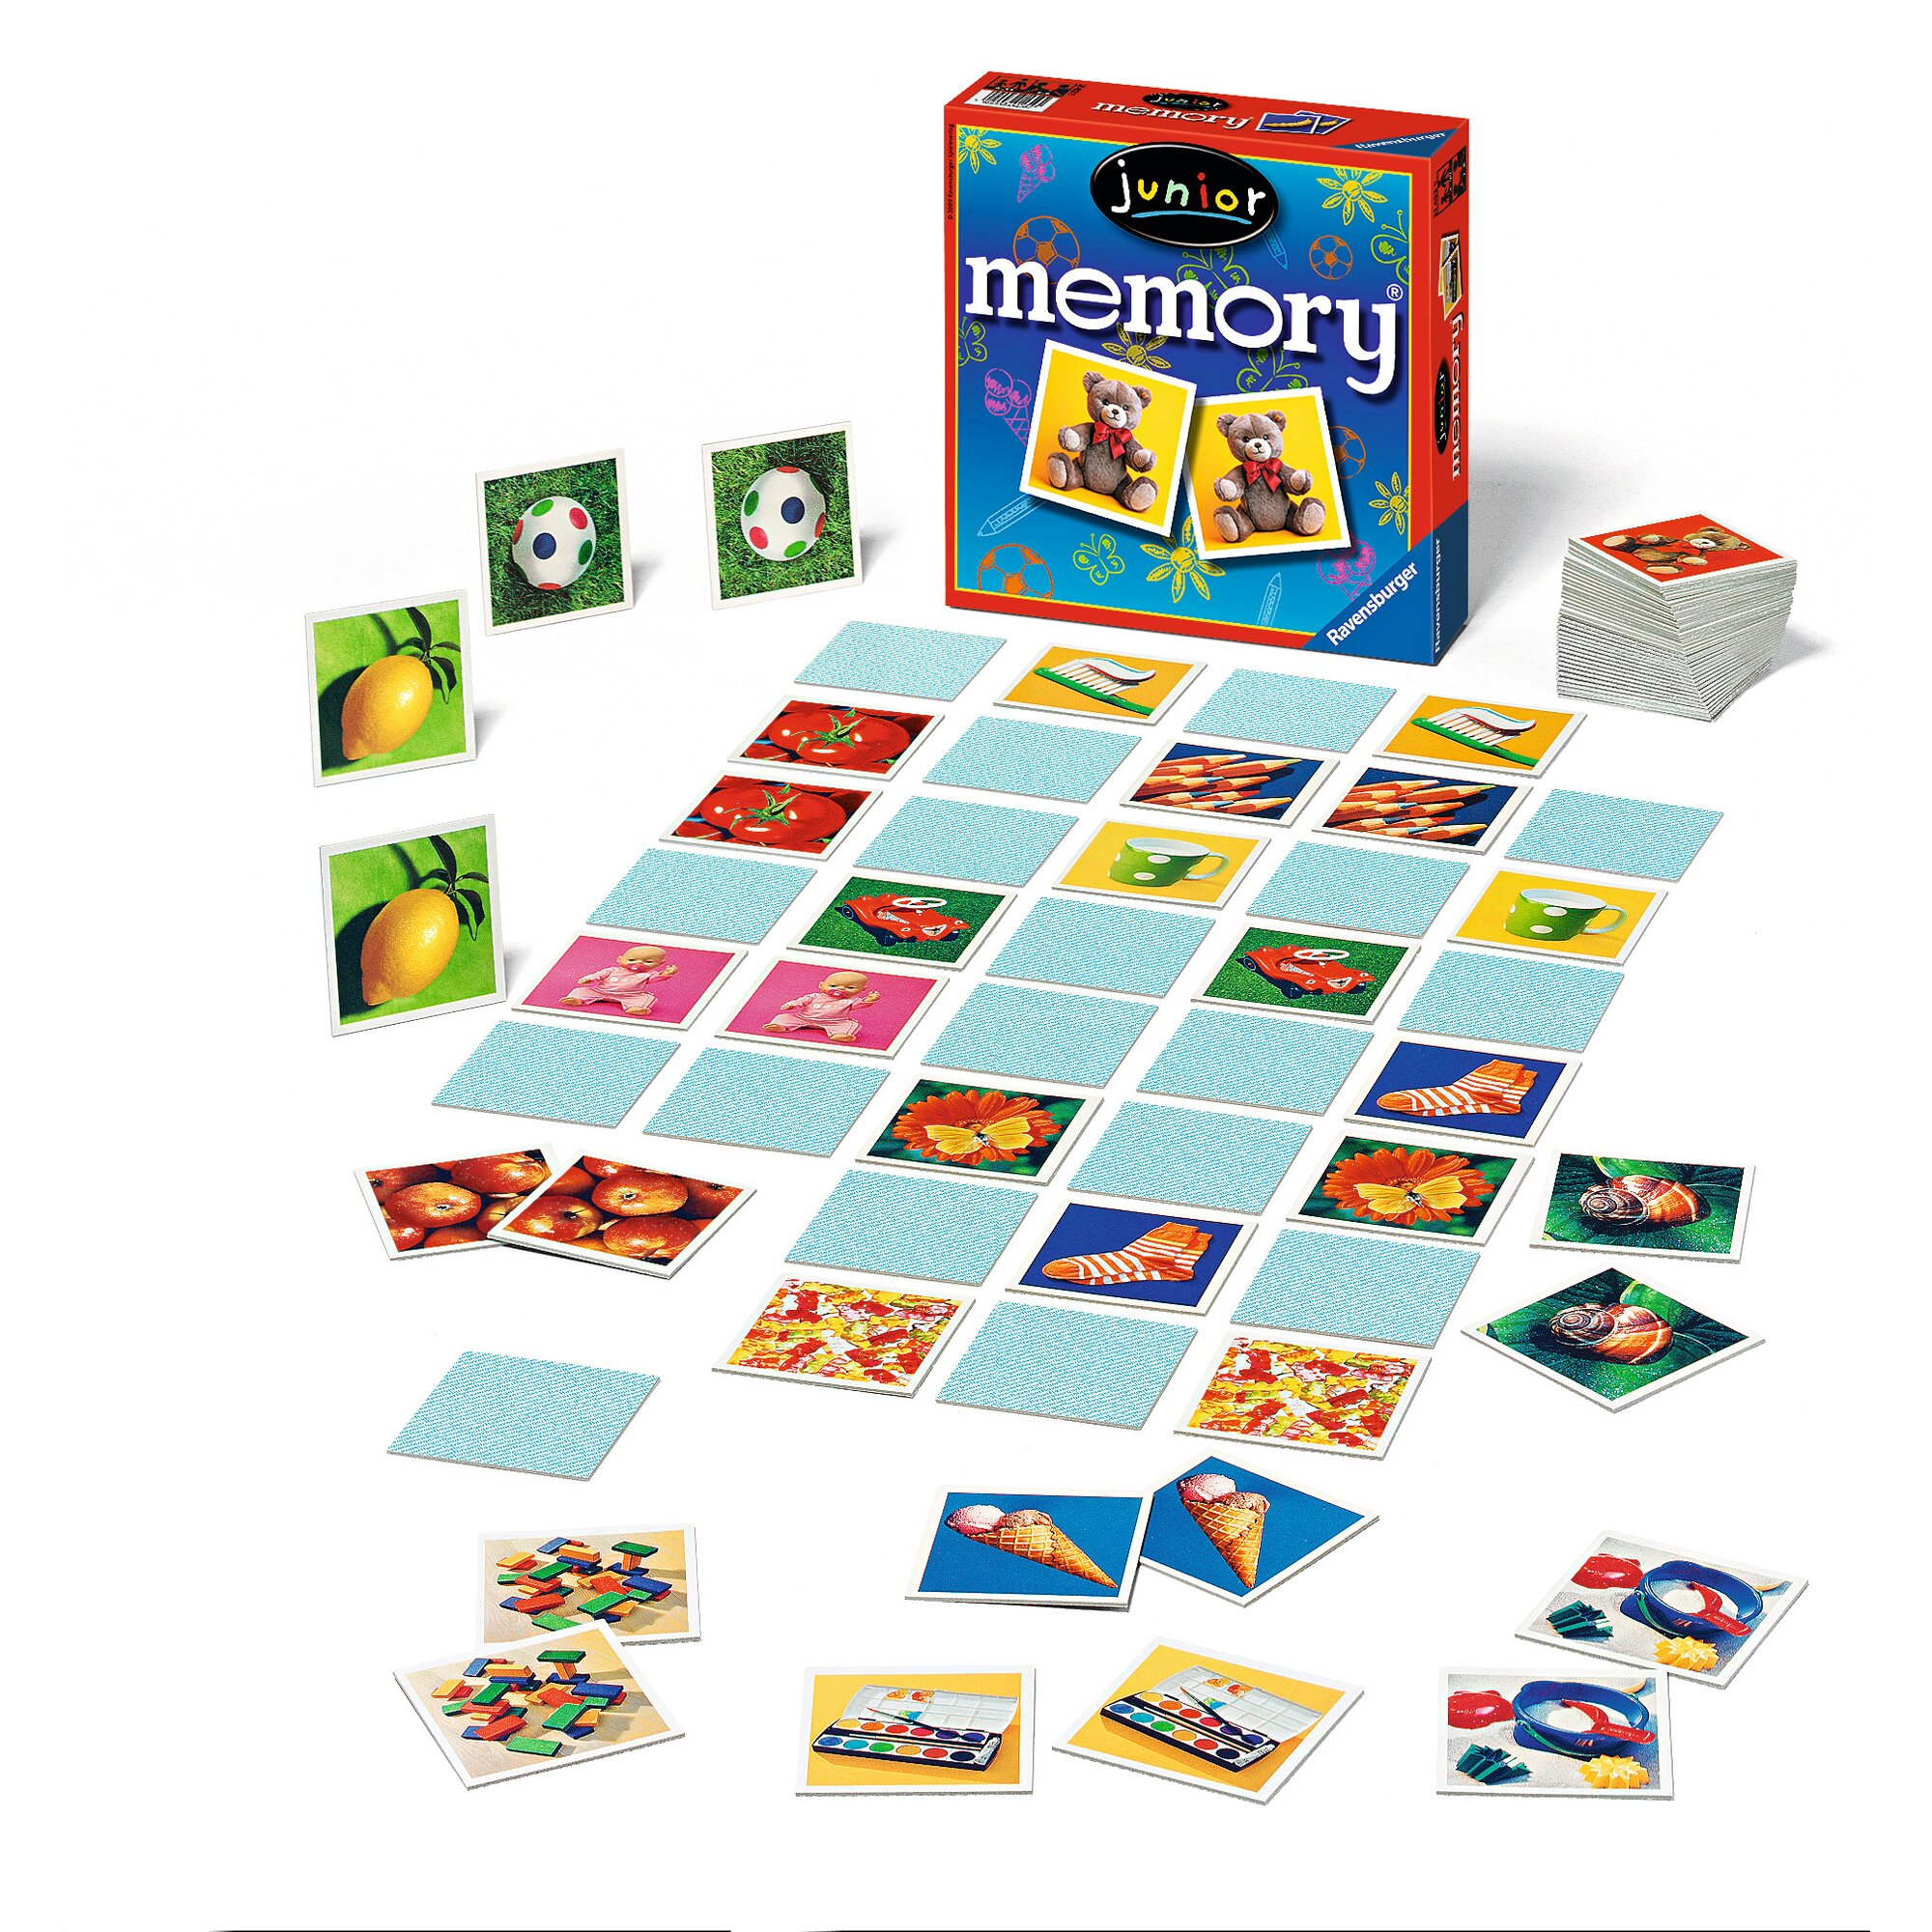 ravensburger-junior-memory-legekartenspiel